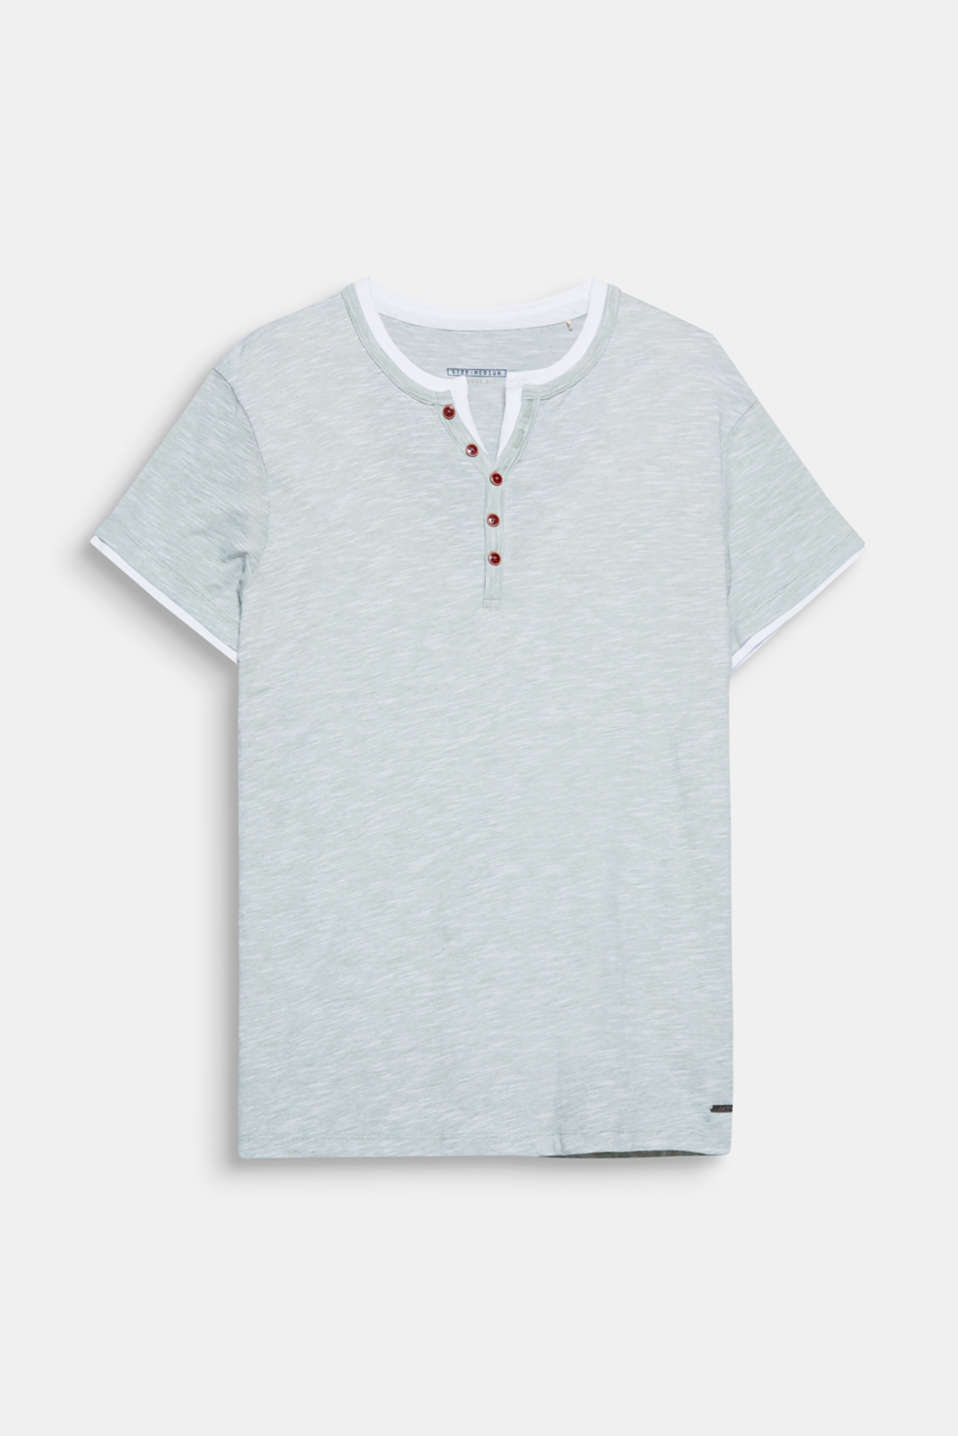 Dein Fashion Basic: Henley-Shirt im coolen Layer-Look, aus Jersey mit Baumwolle.